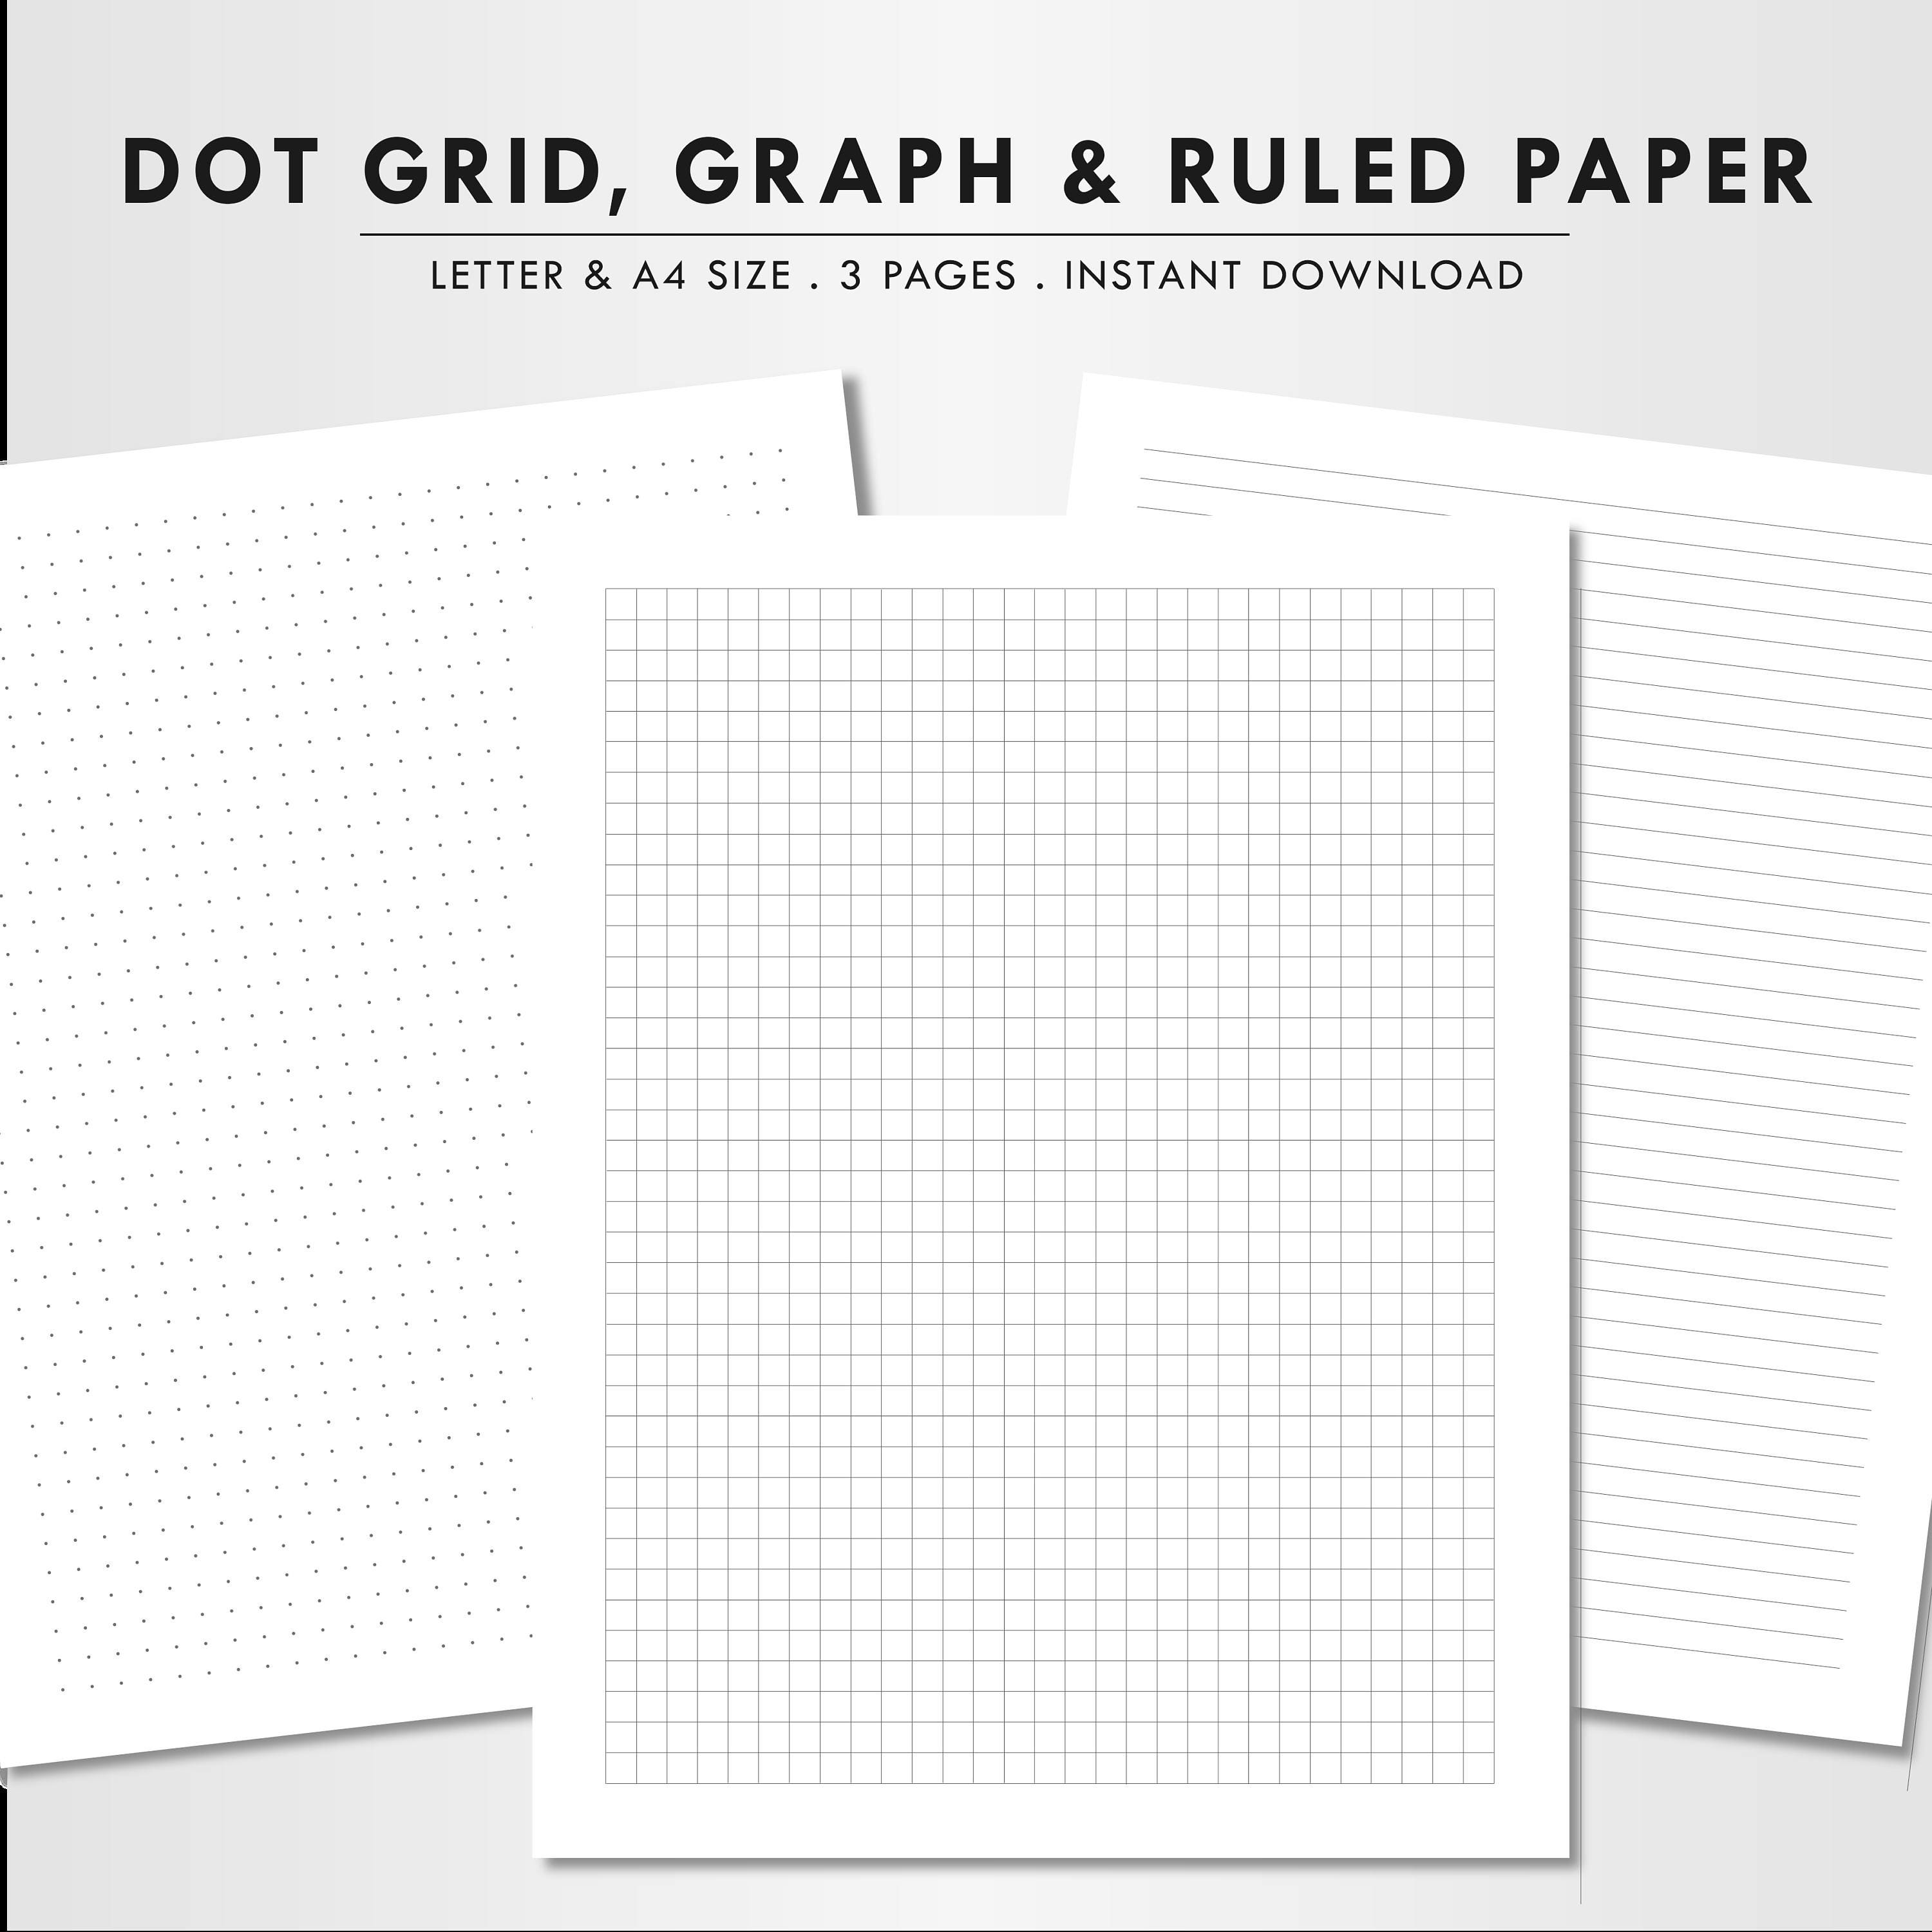 Blank paper letter size A4 dot grid graph paper ruled